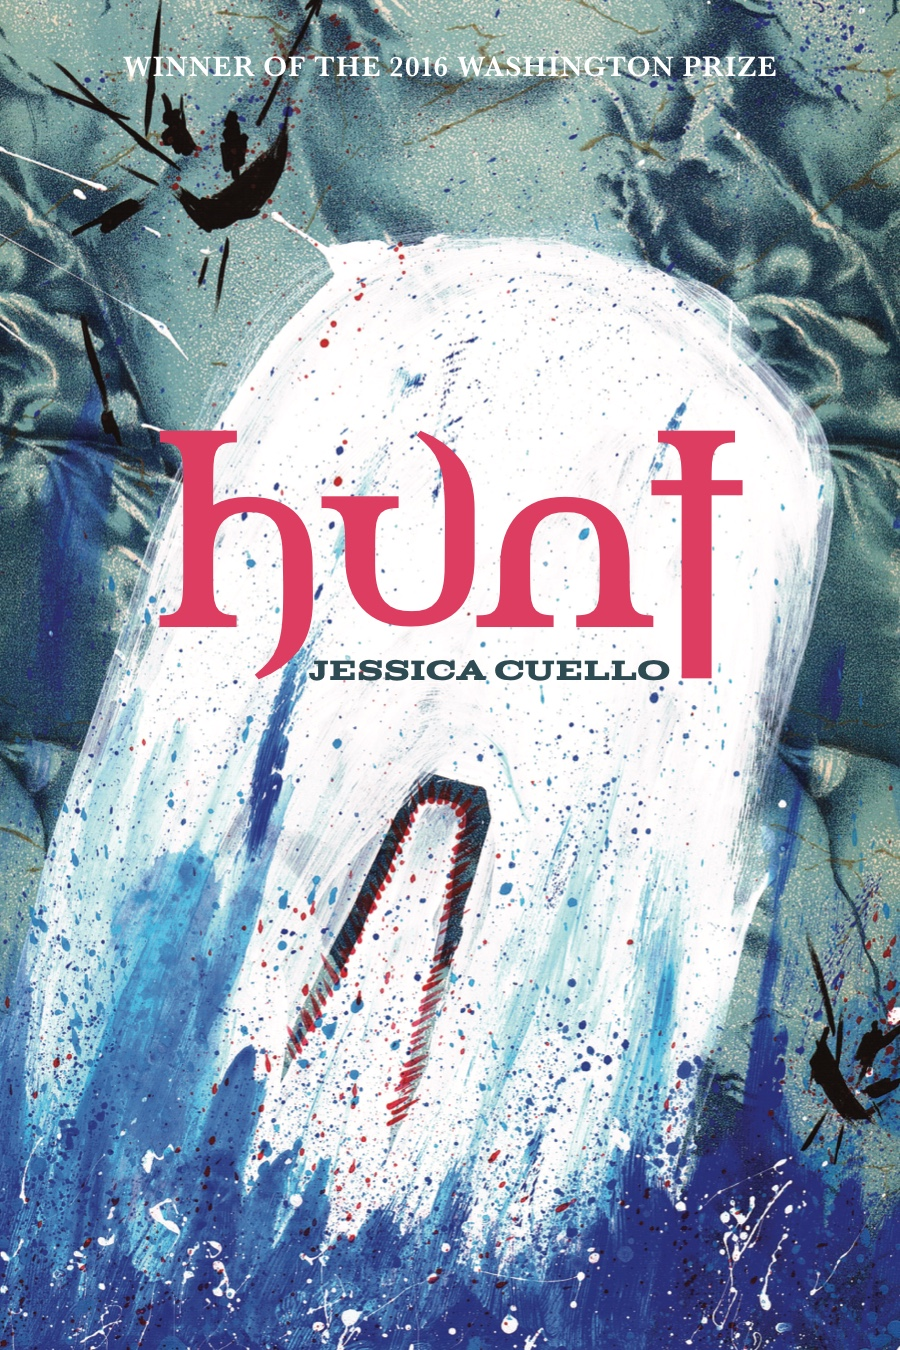 The cover of Hunt. An abstract painted white whale emerges from the water below the title, written in red. You can see its mouth and teeth.